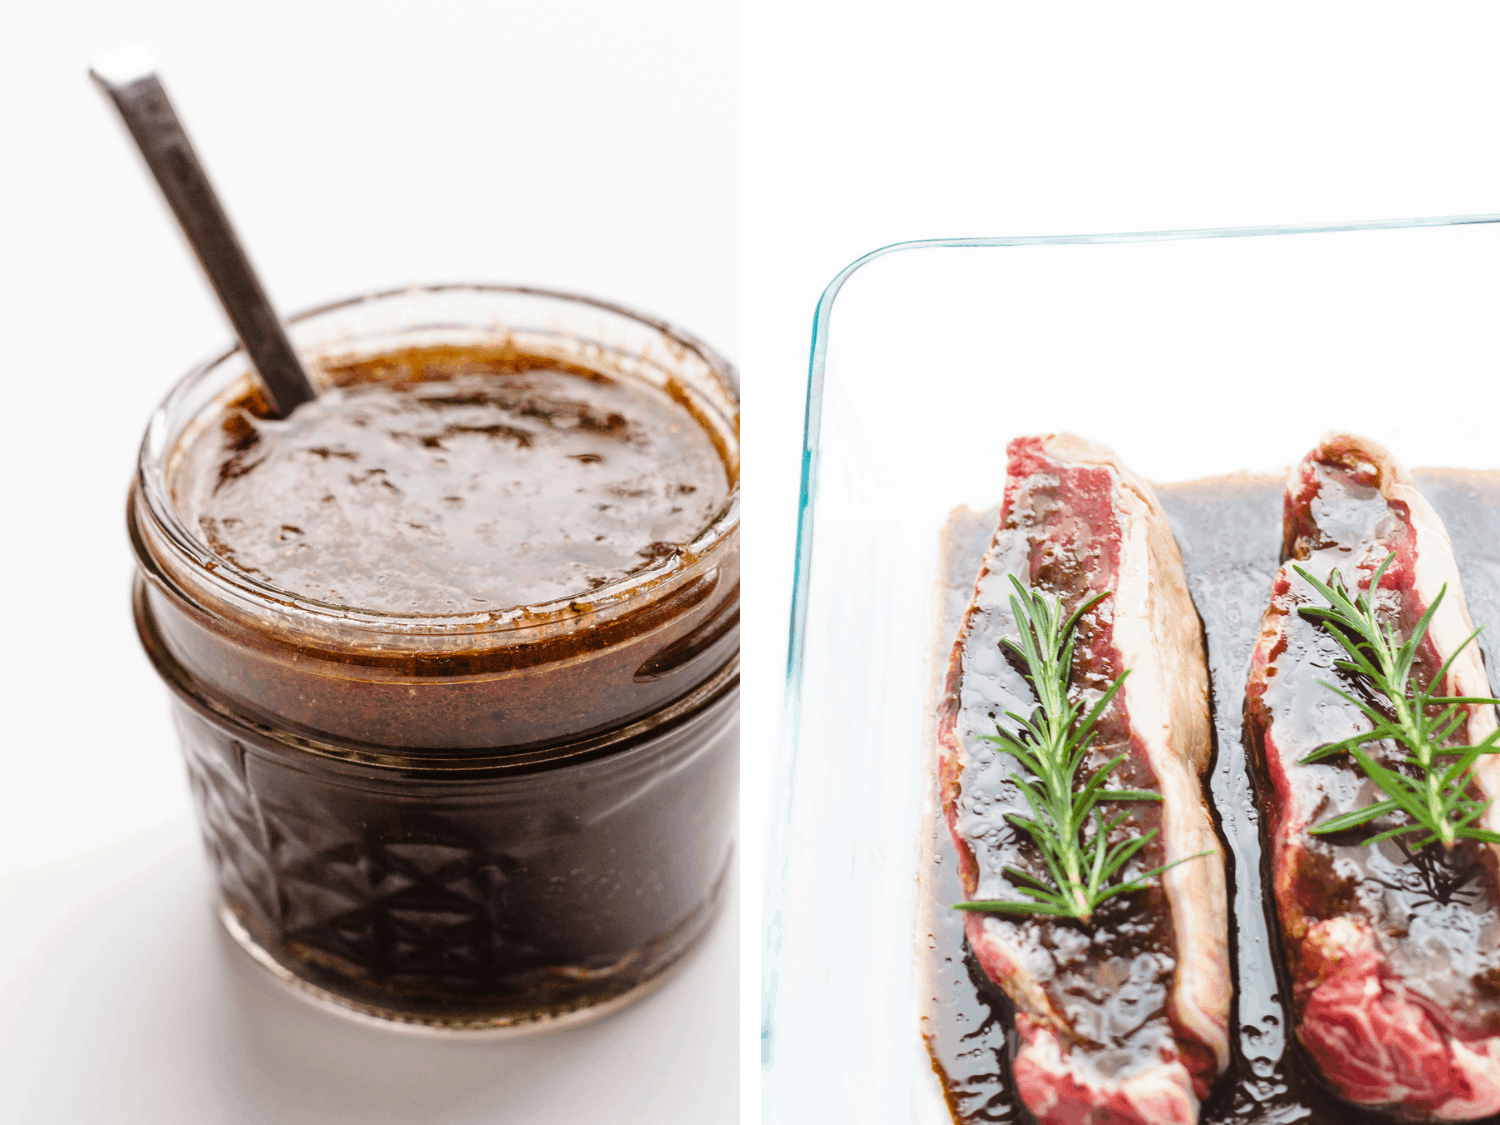 Jar of steak marinade next to a glass dish containing two steaks soaking in marinade with sprigs of rosemary on top.